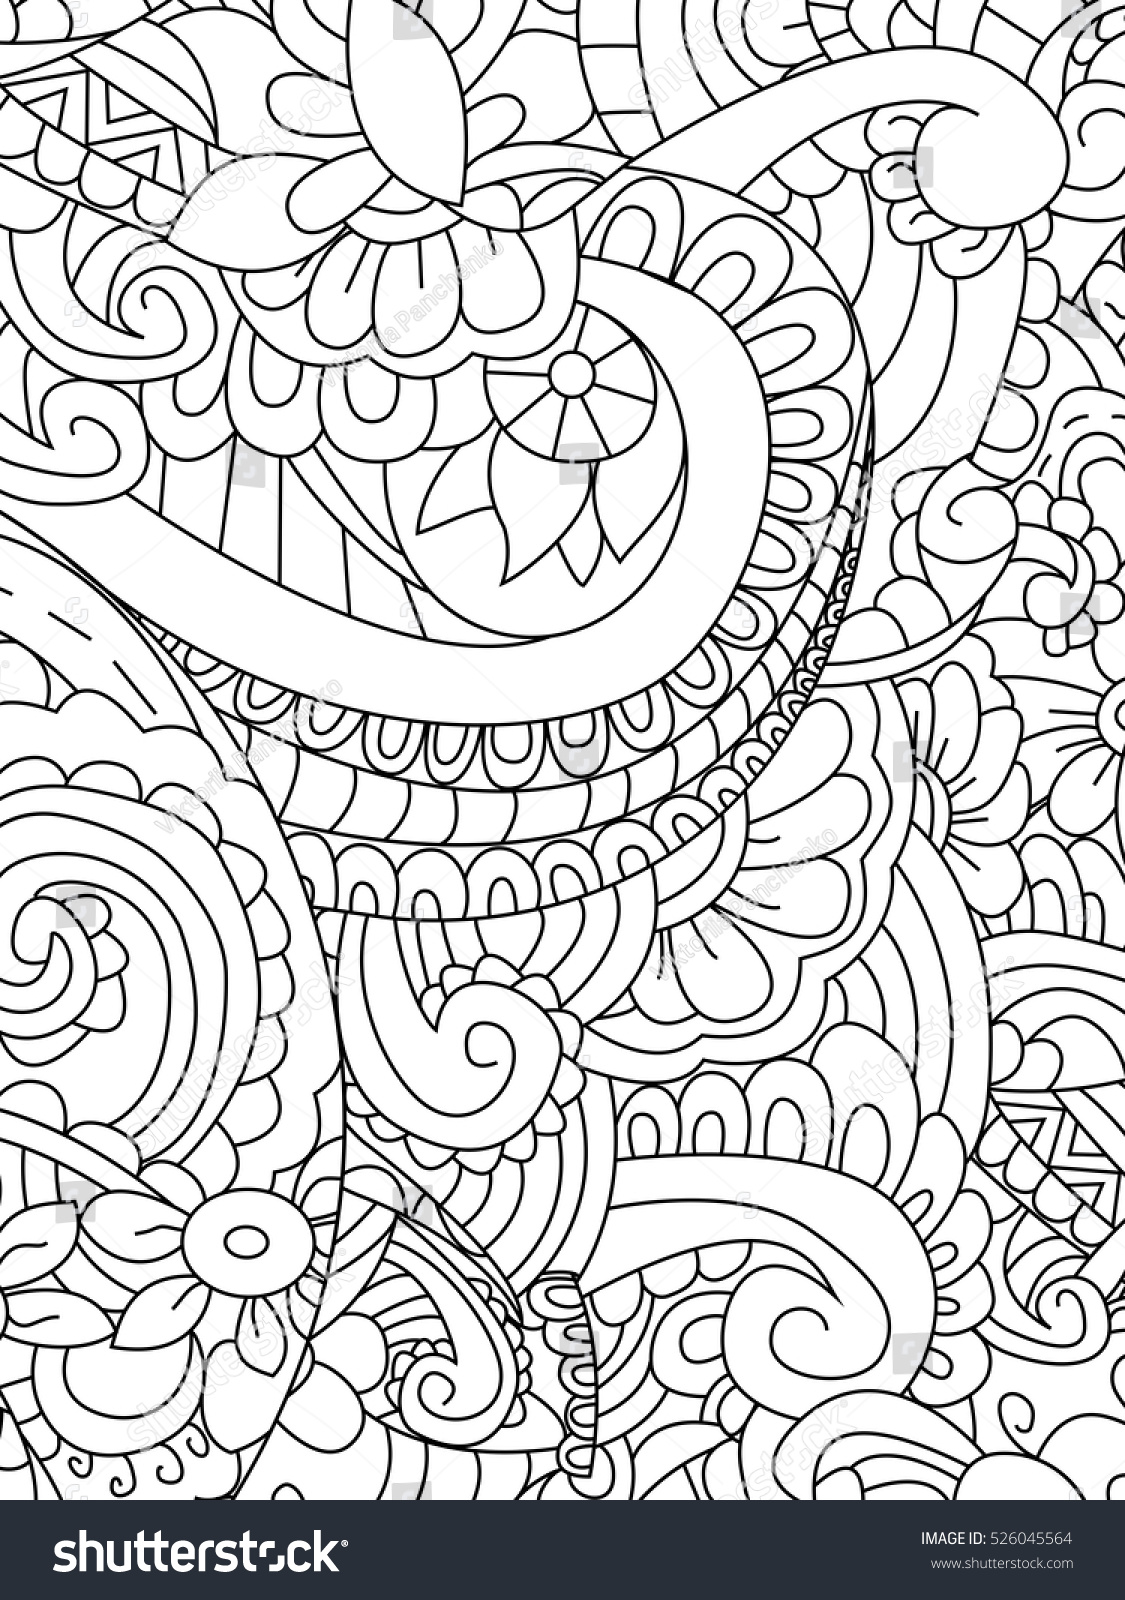 Stress coloring book for adults - Pattern Flower Coloring Book For Adults Vector Illustration Anti Stress Coloring For Adult